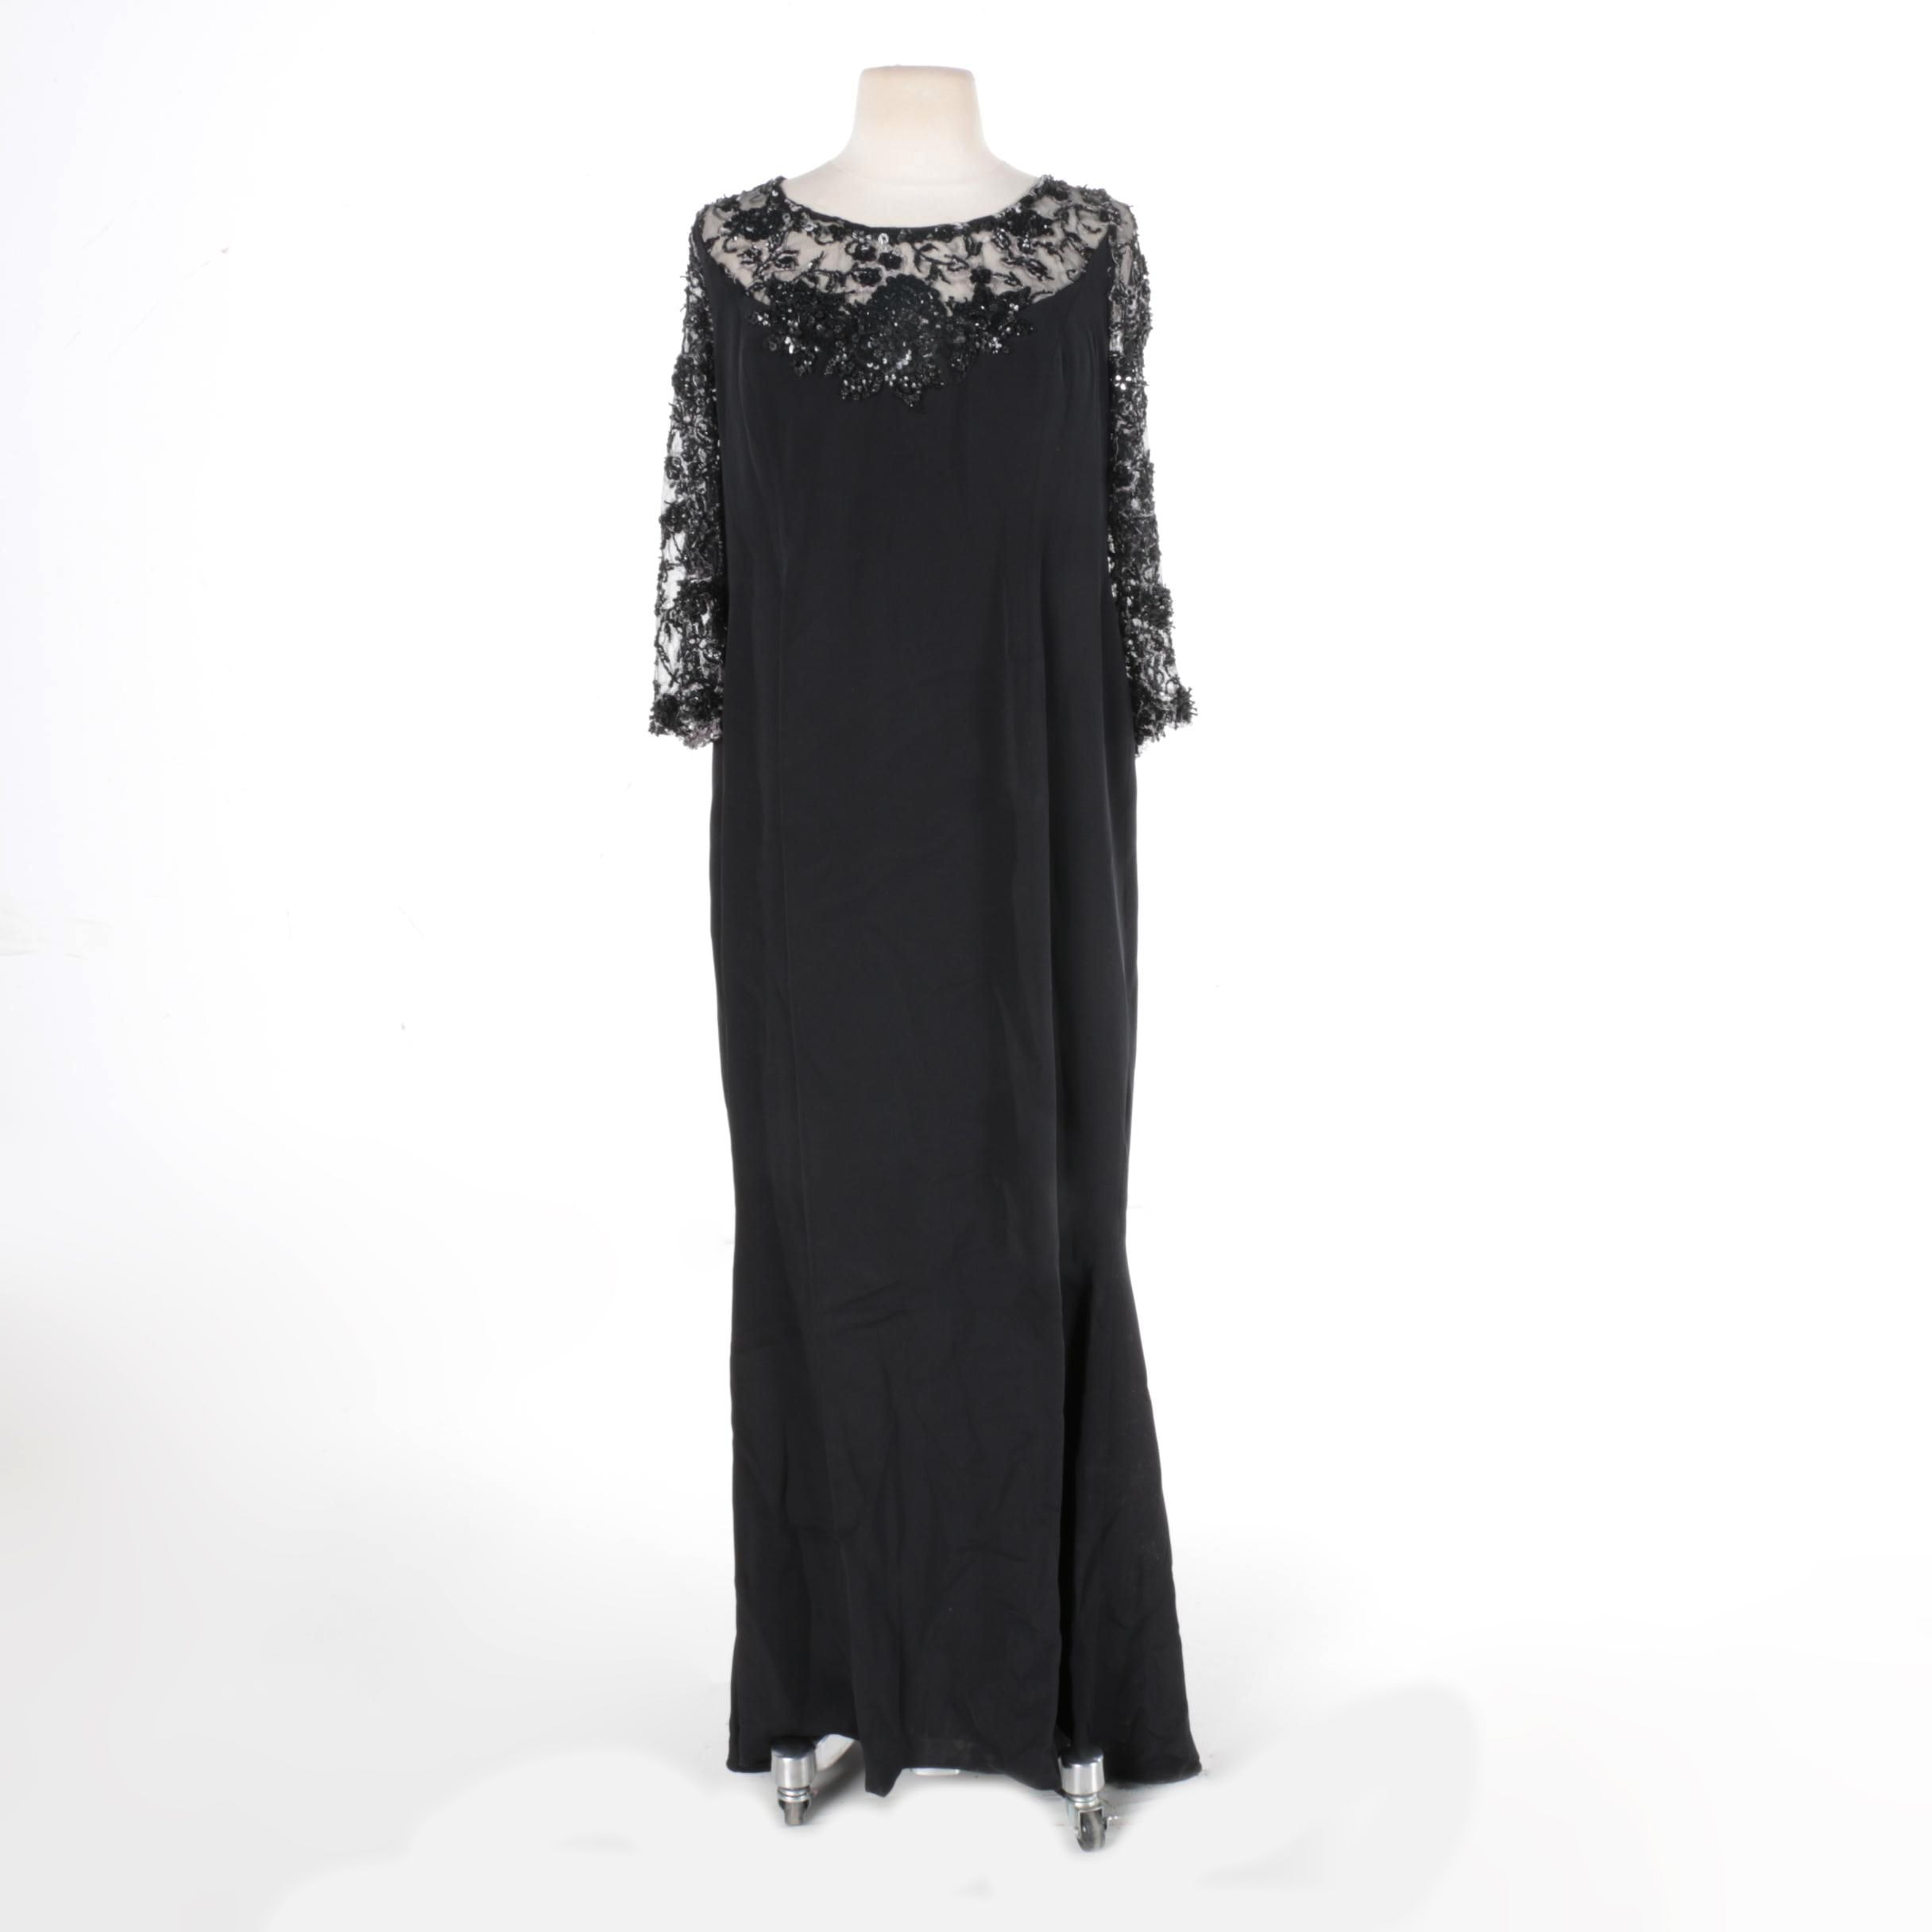 Escada Black Evening Dress